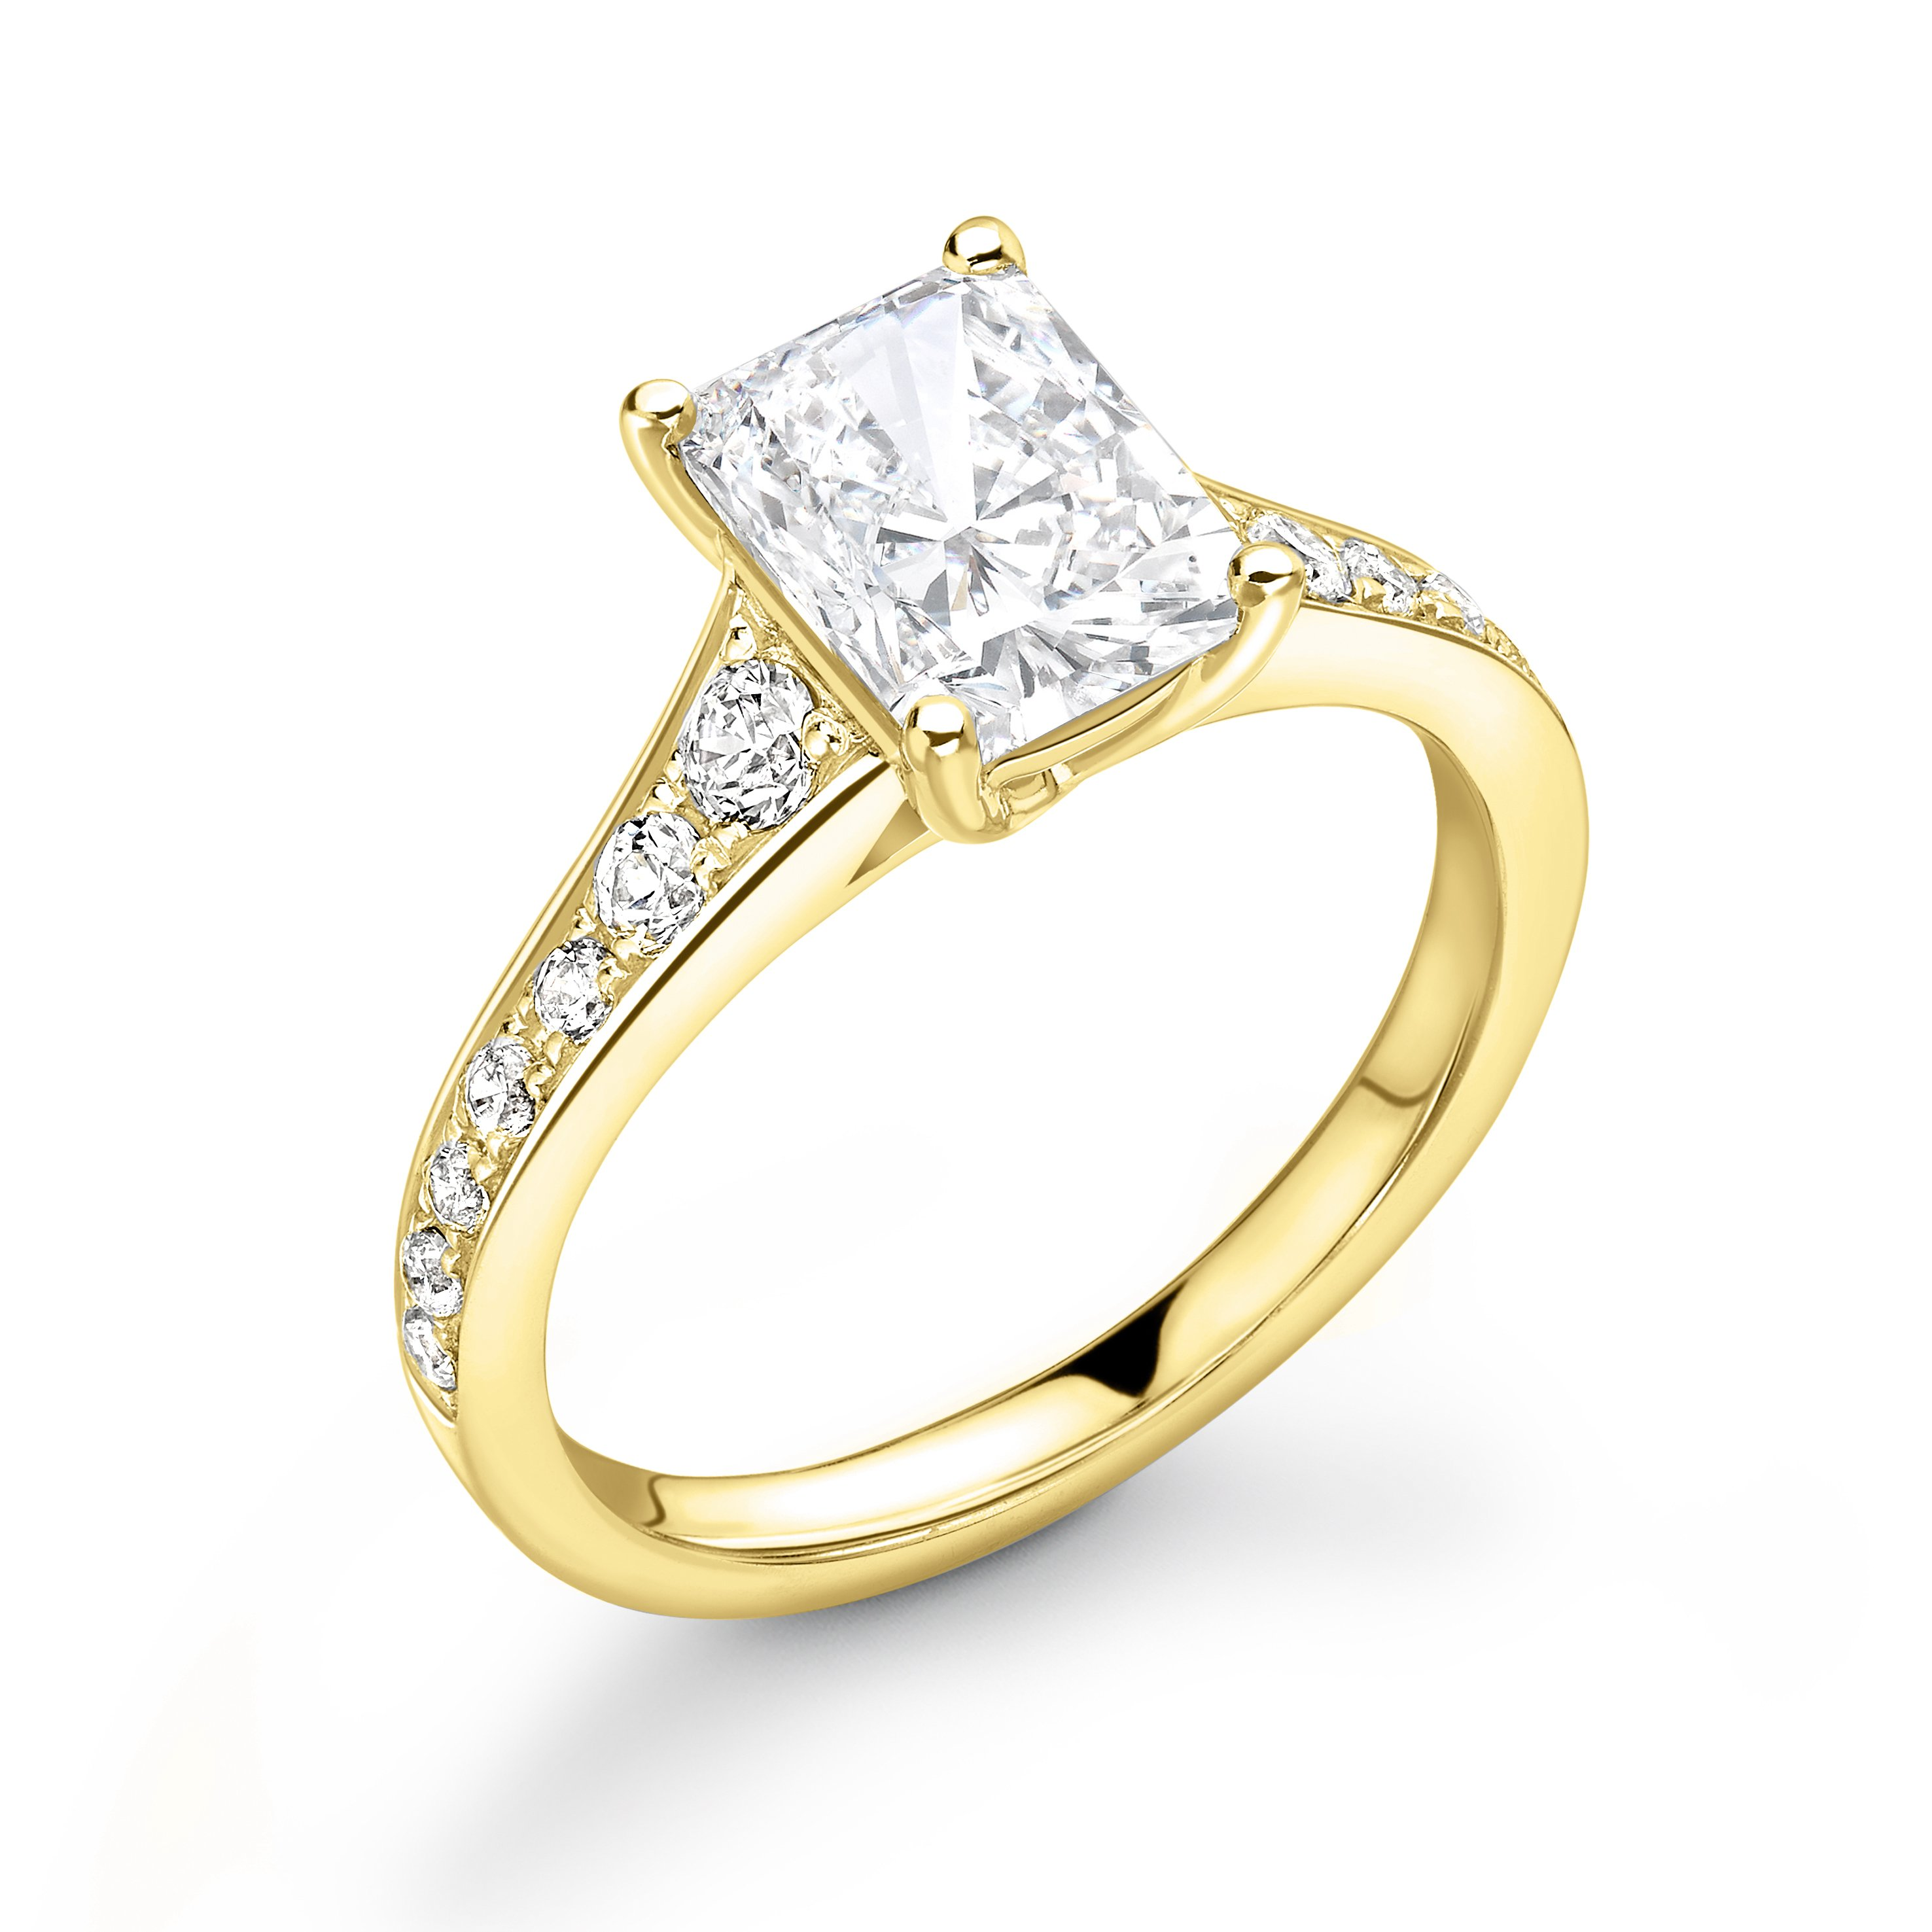 Tapering Up Shoulder Radiant Diamond Engagement Ring in Gold and Platinum